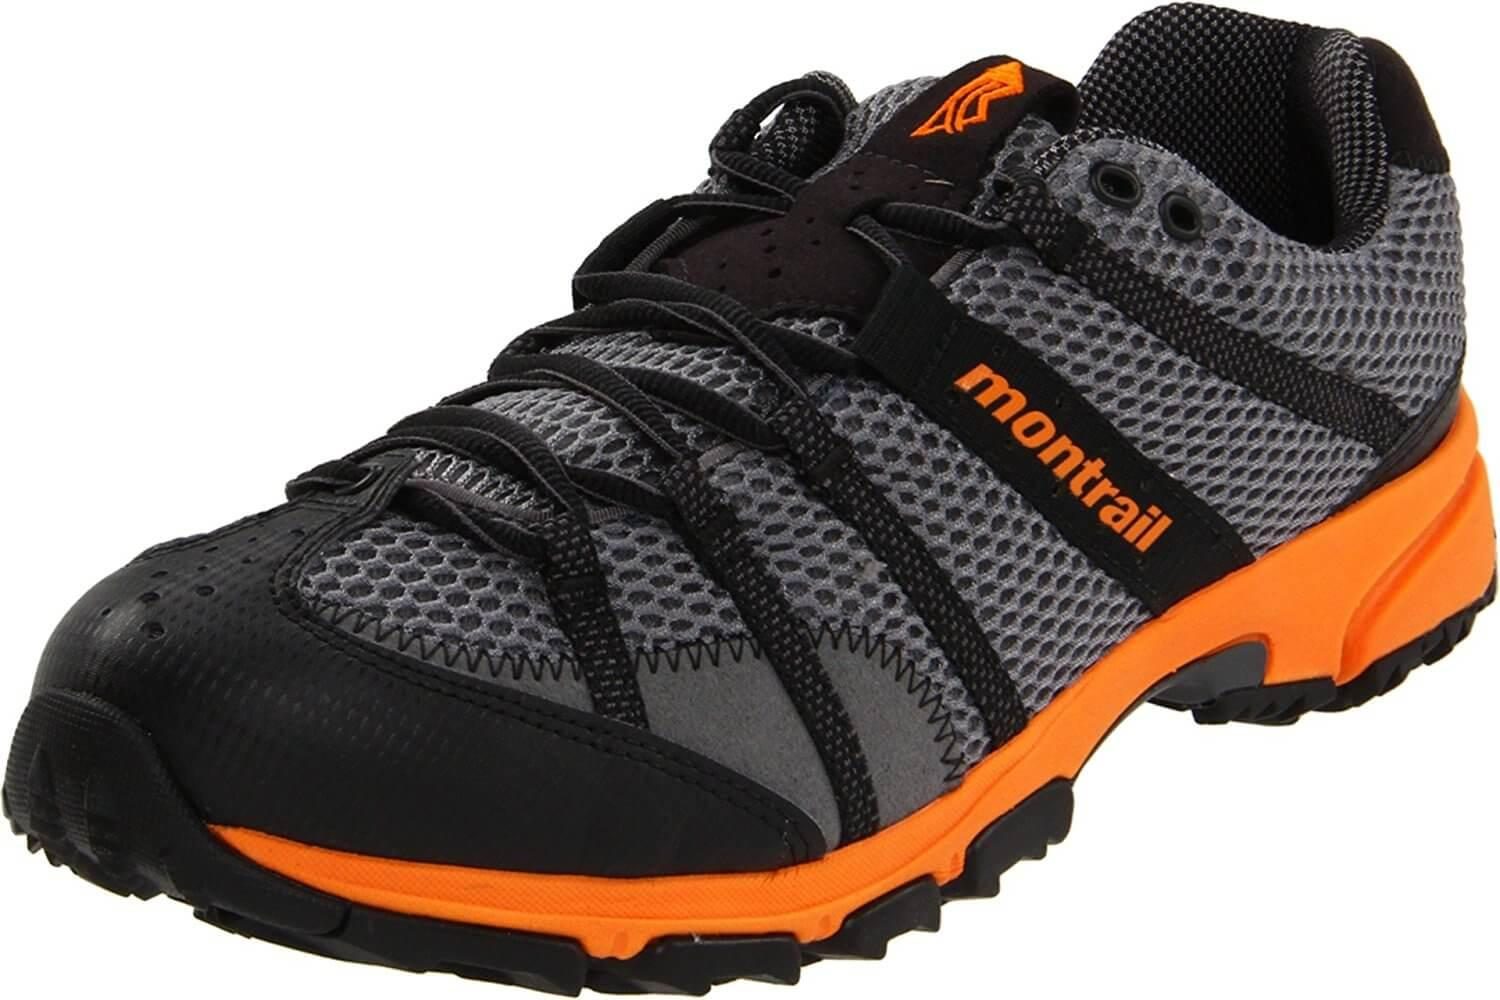 REview of the Montrail Mountain Masochist II